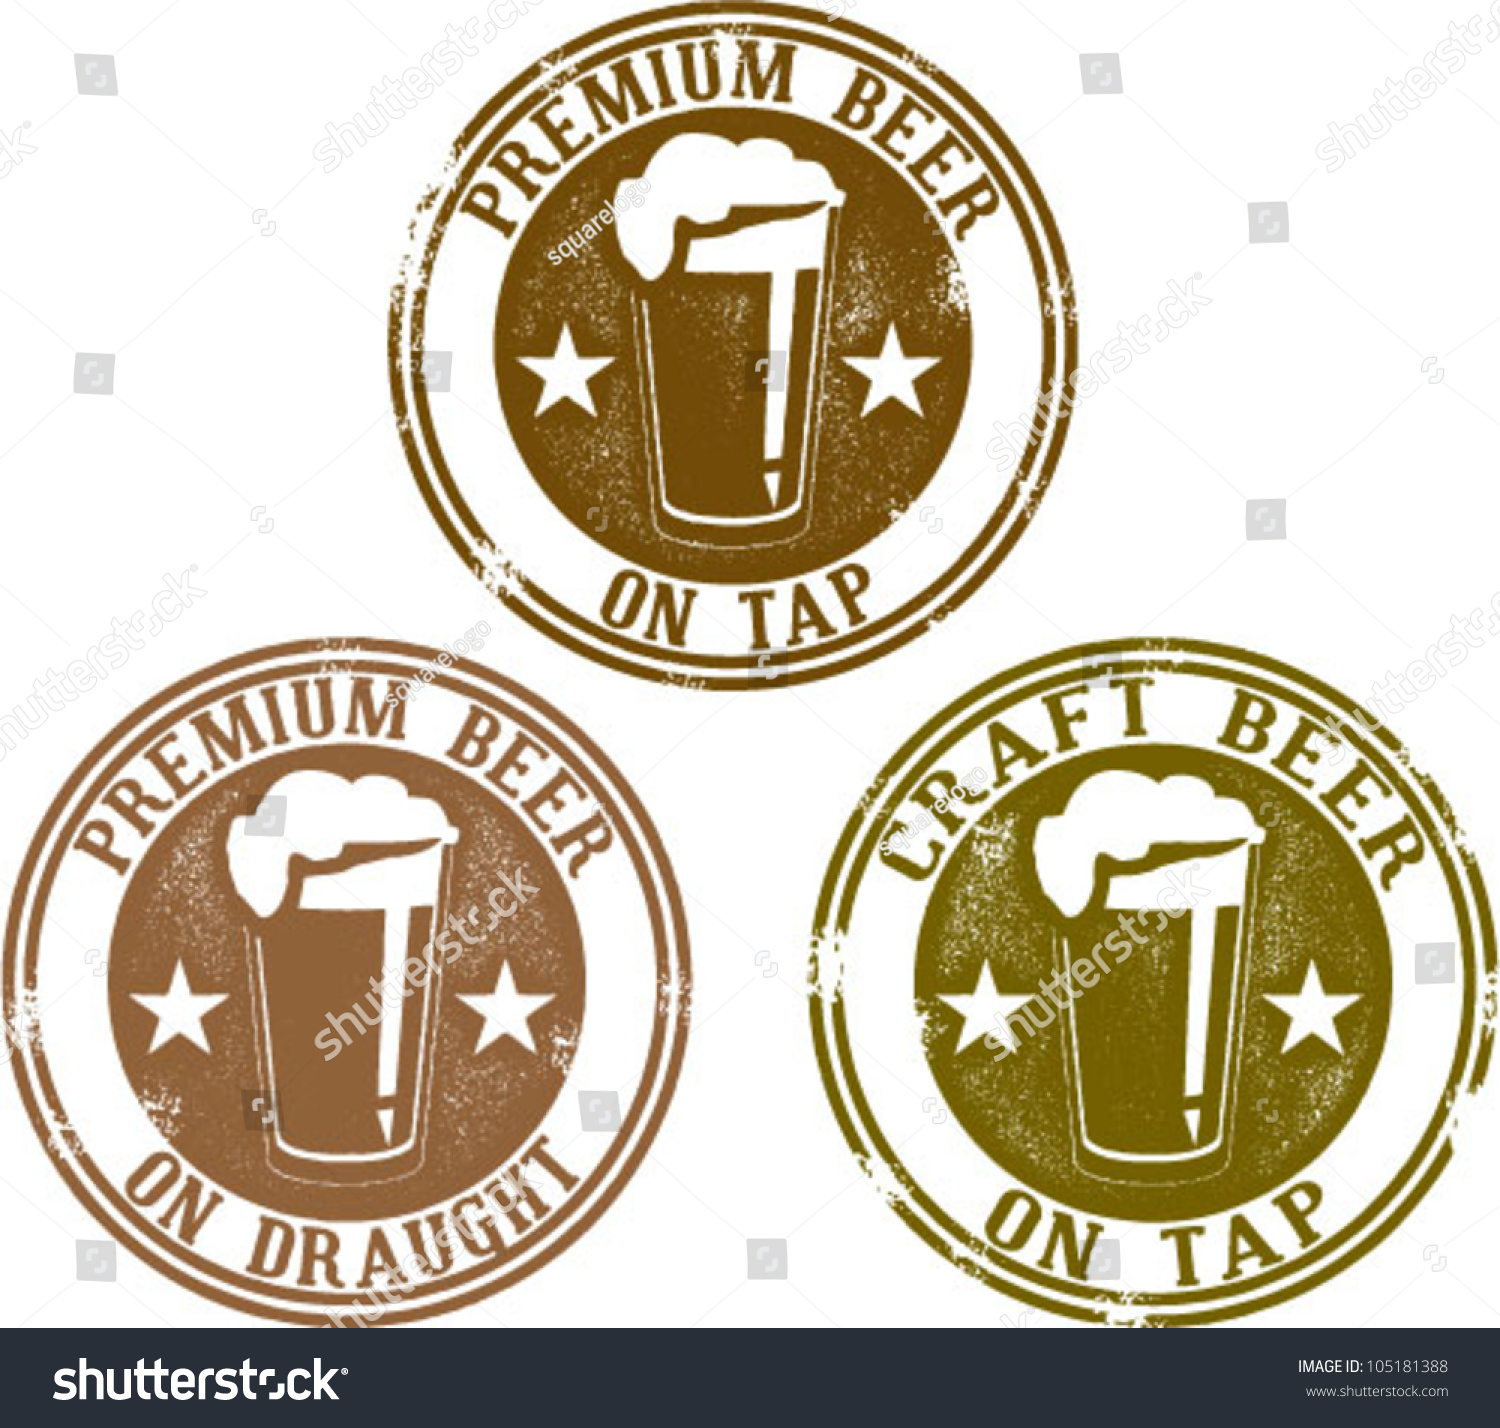 Premium Craft Beer On Tap Or Draught Stamps Stock Vector ...